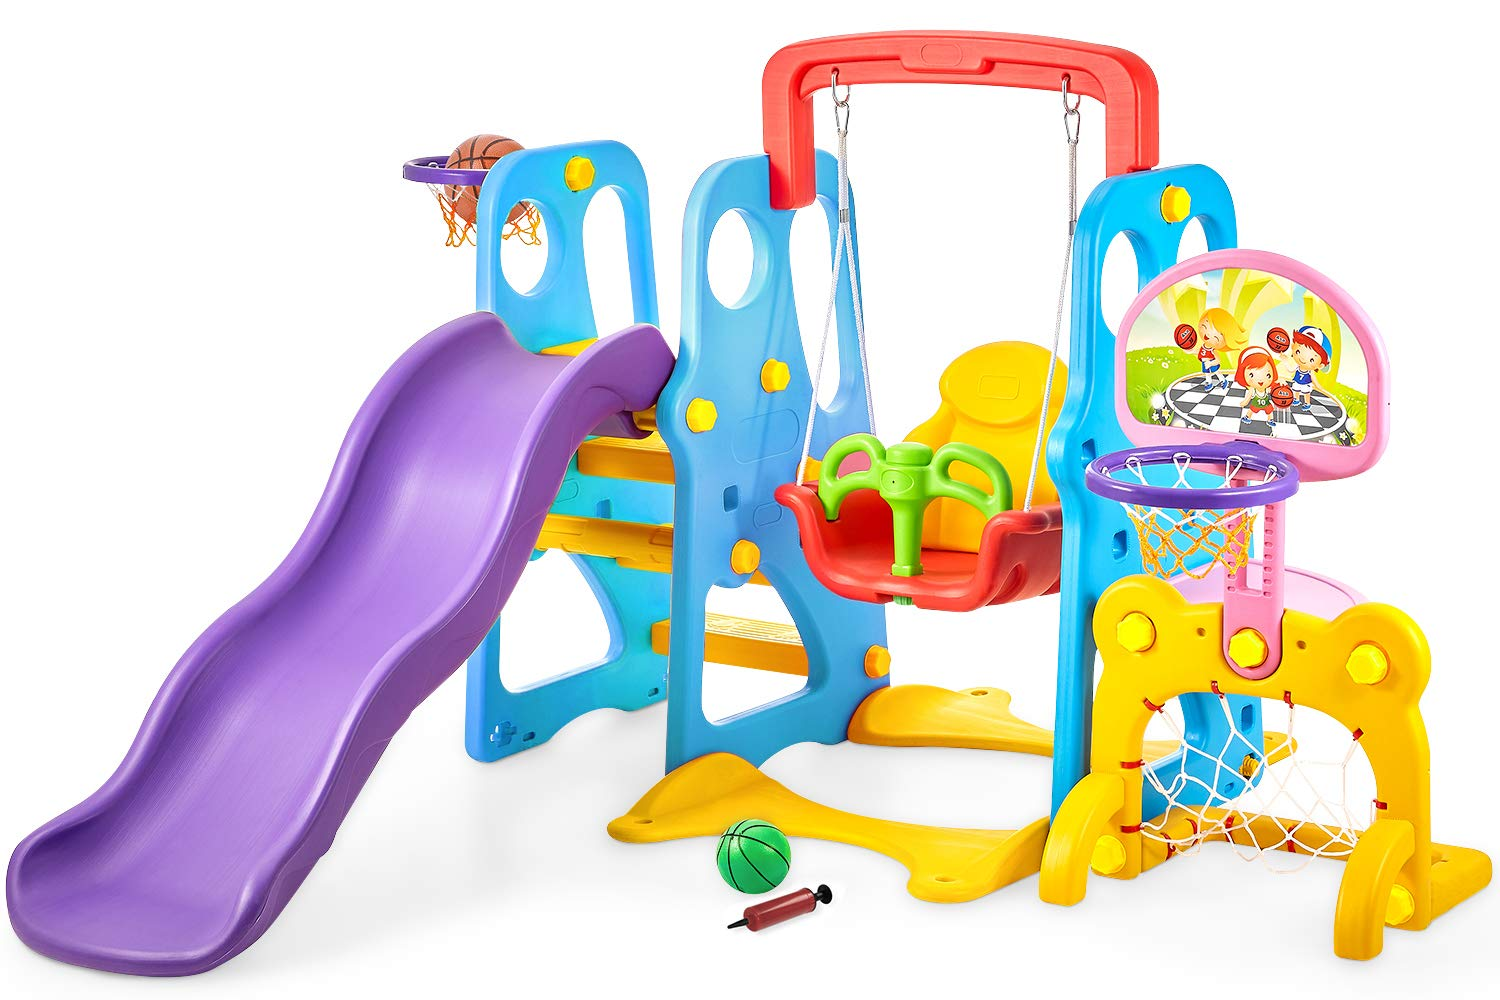 kealive Climber and Swing Set Toddler 5 in 1 Play Slide Climber Indoor Outdoor Playground Toy, 2 Basketball Hoops with Ball Game Accessories Activity Center in Backyard, for Kids Ages 3 and up by kealive